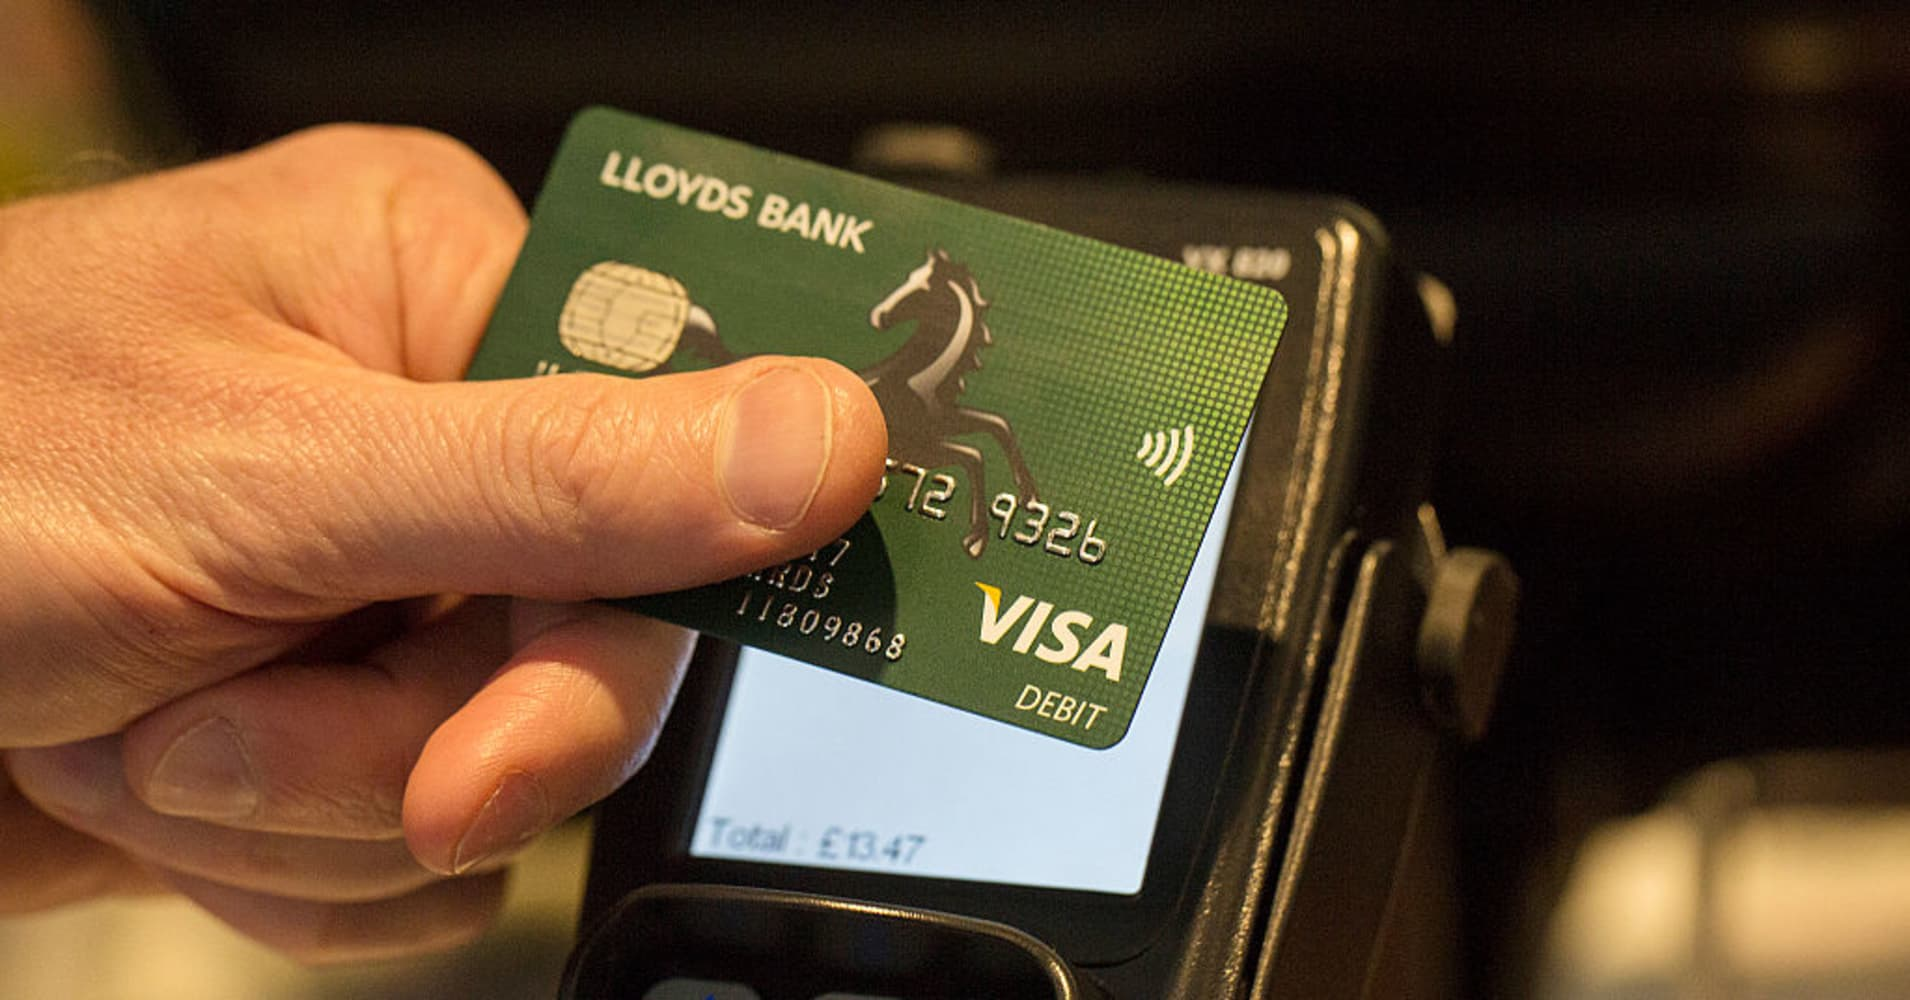 Lloyds bans use of credit cards to buy cryptocurrencies like bitcoin